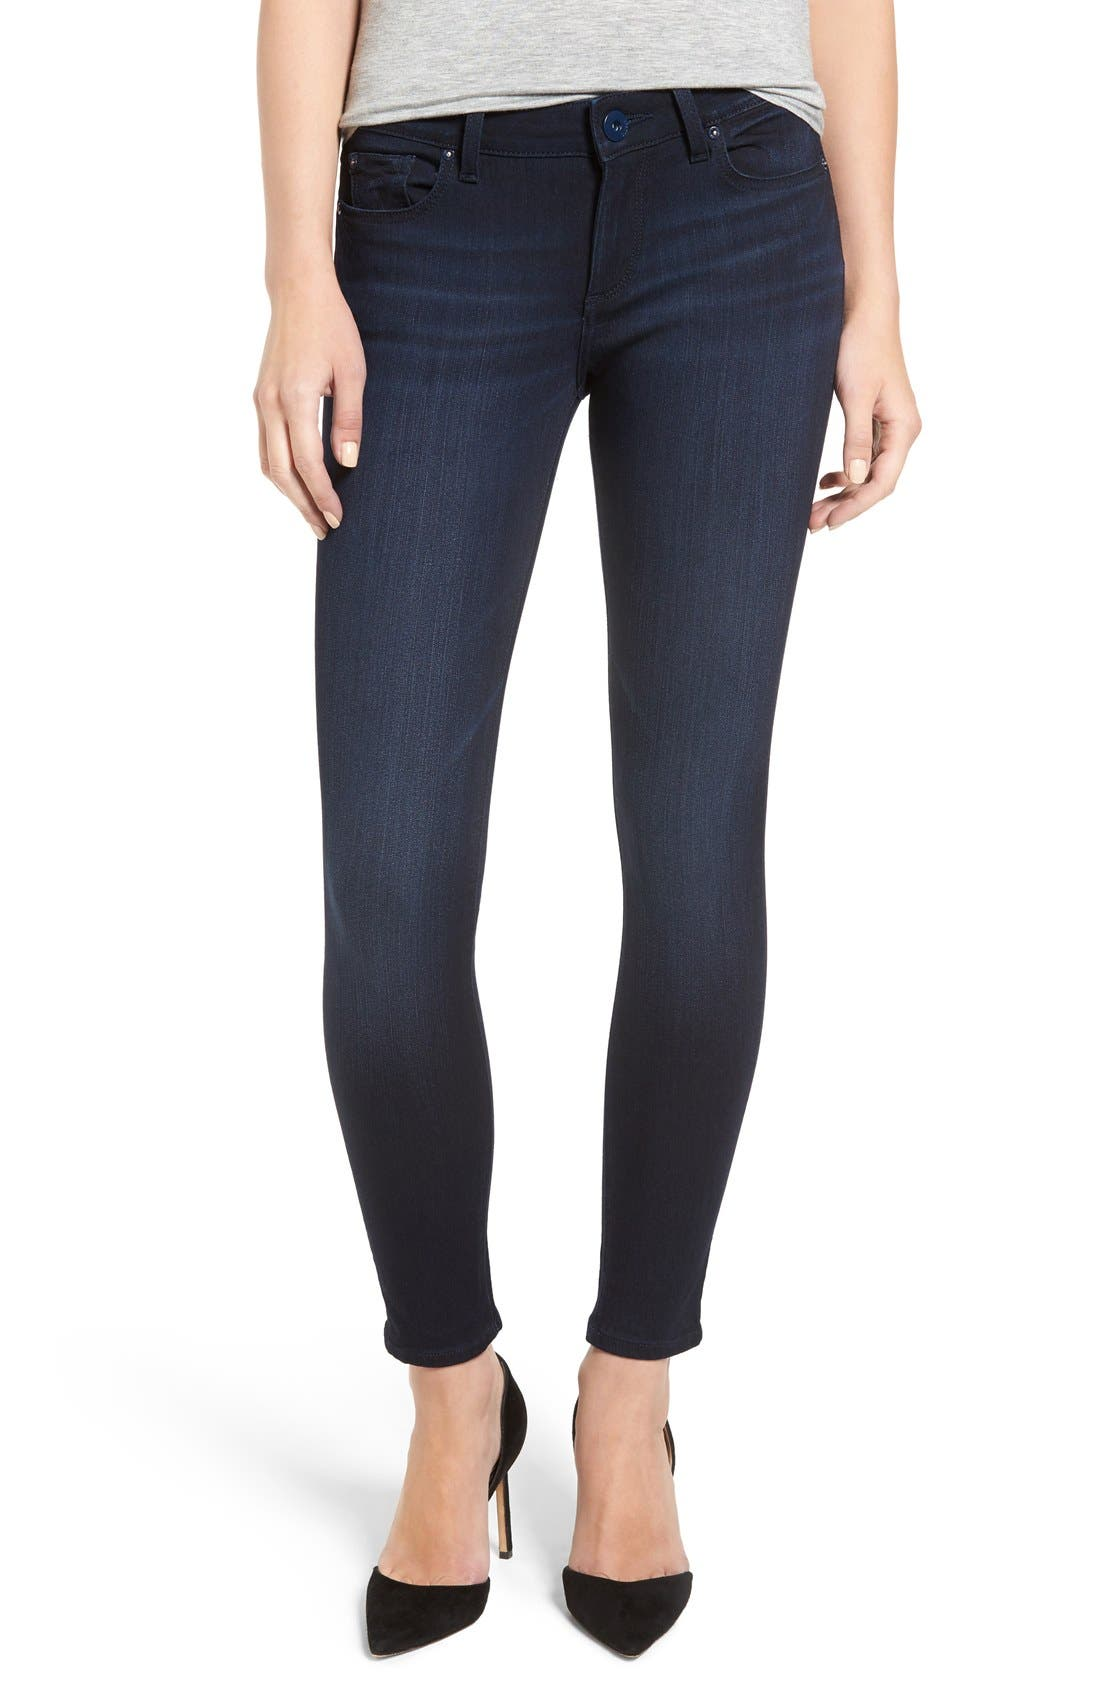 Main Image - DL1961 'Emma' Power Legging Jeans (Token)